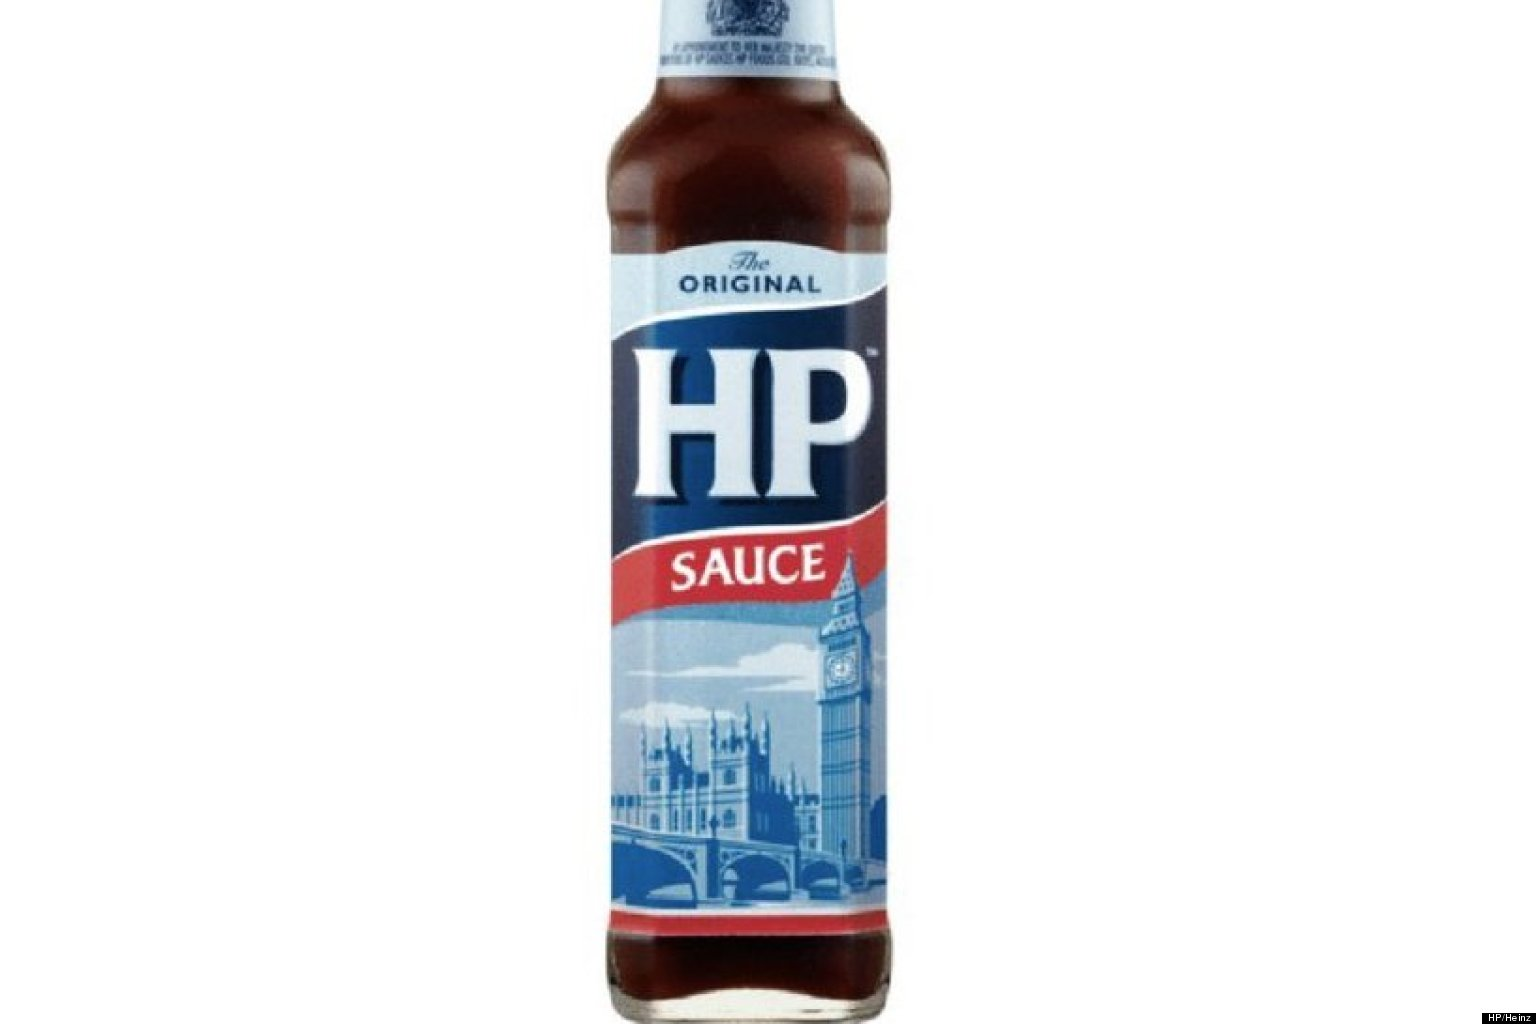 o HP SAUCE facebook it's funny how in the midst of the american civil war someone